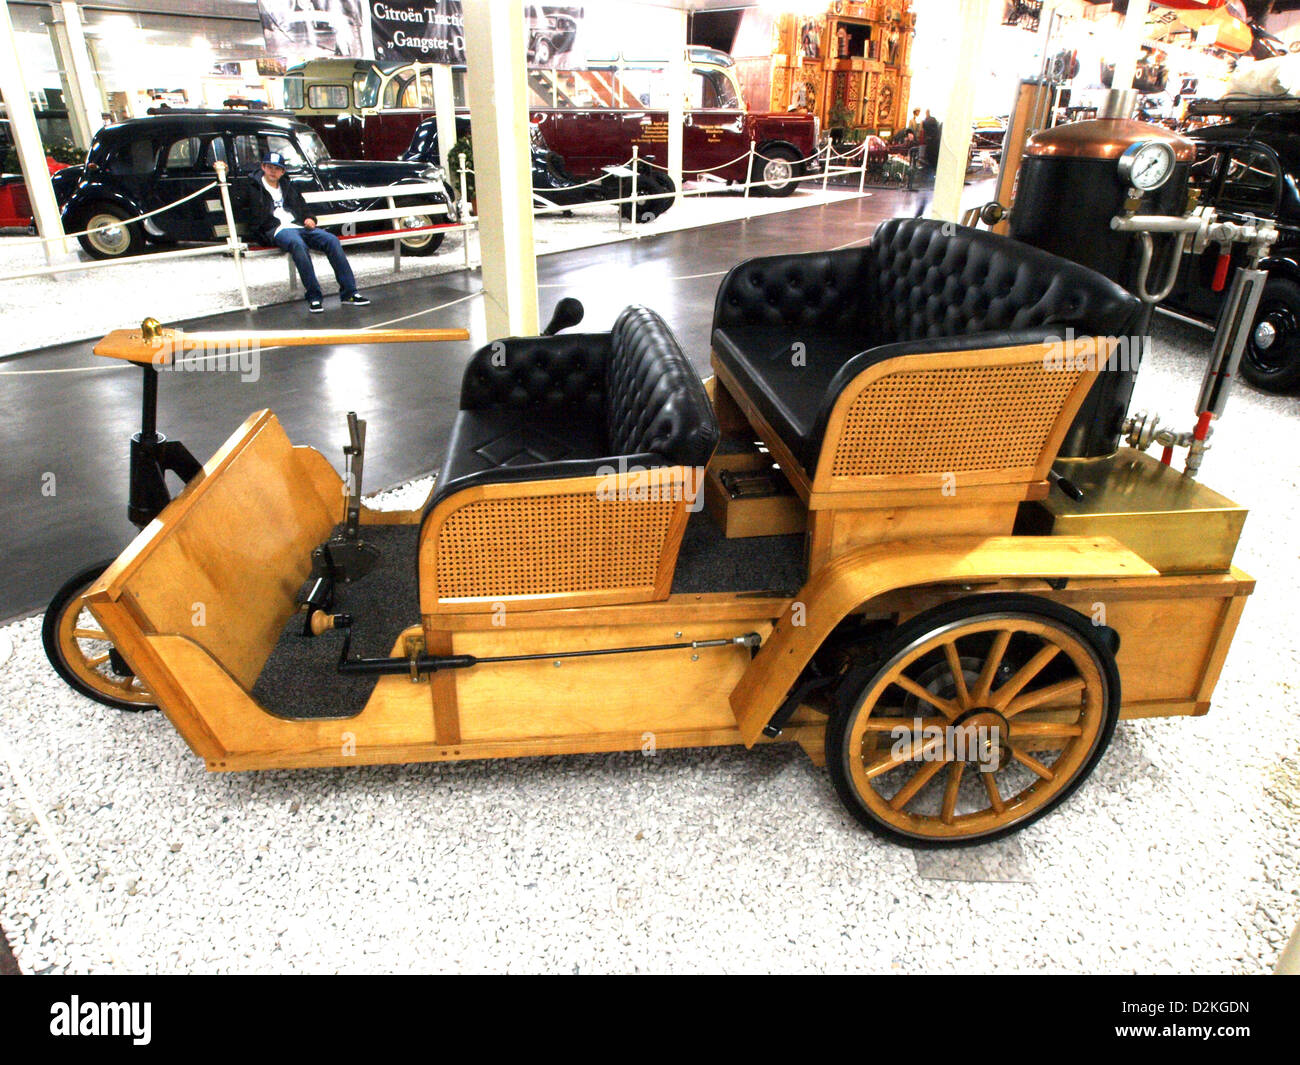 Grout Brothers (1899) 1000cc 2 cylinder 8hp steam engine - Stock Image